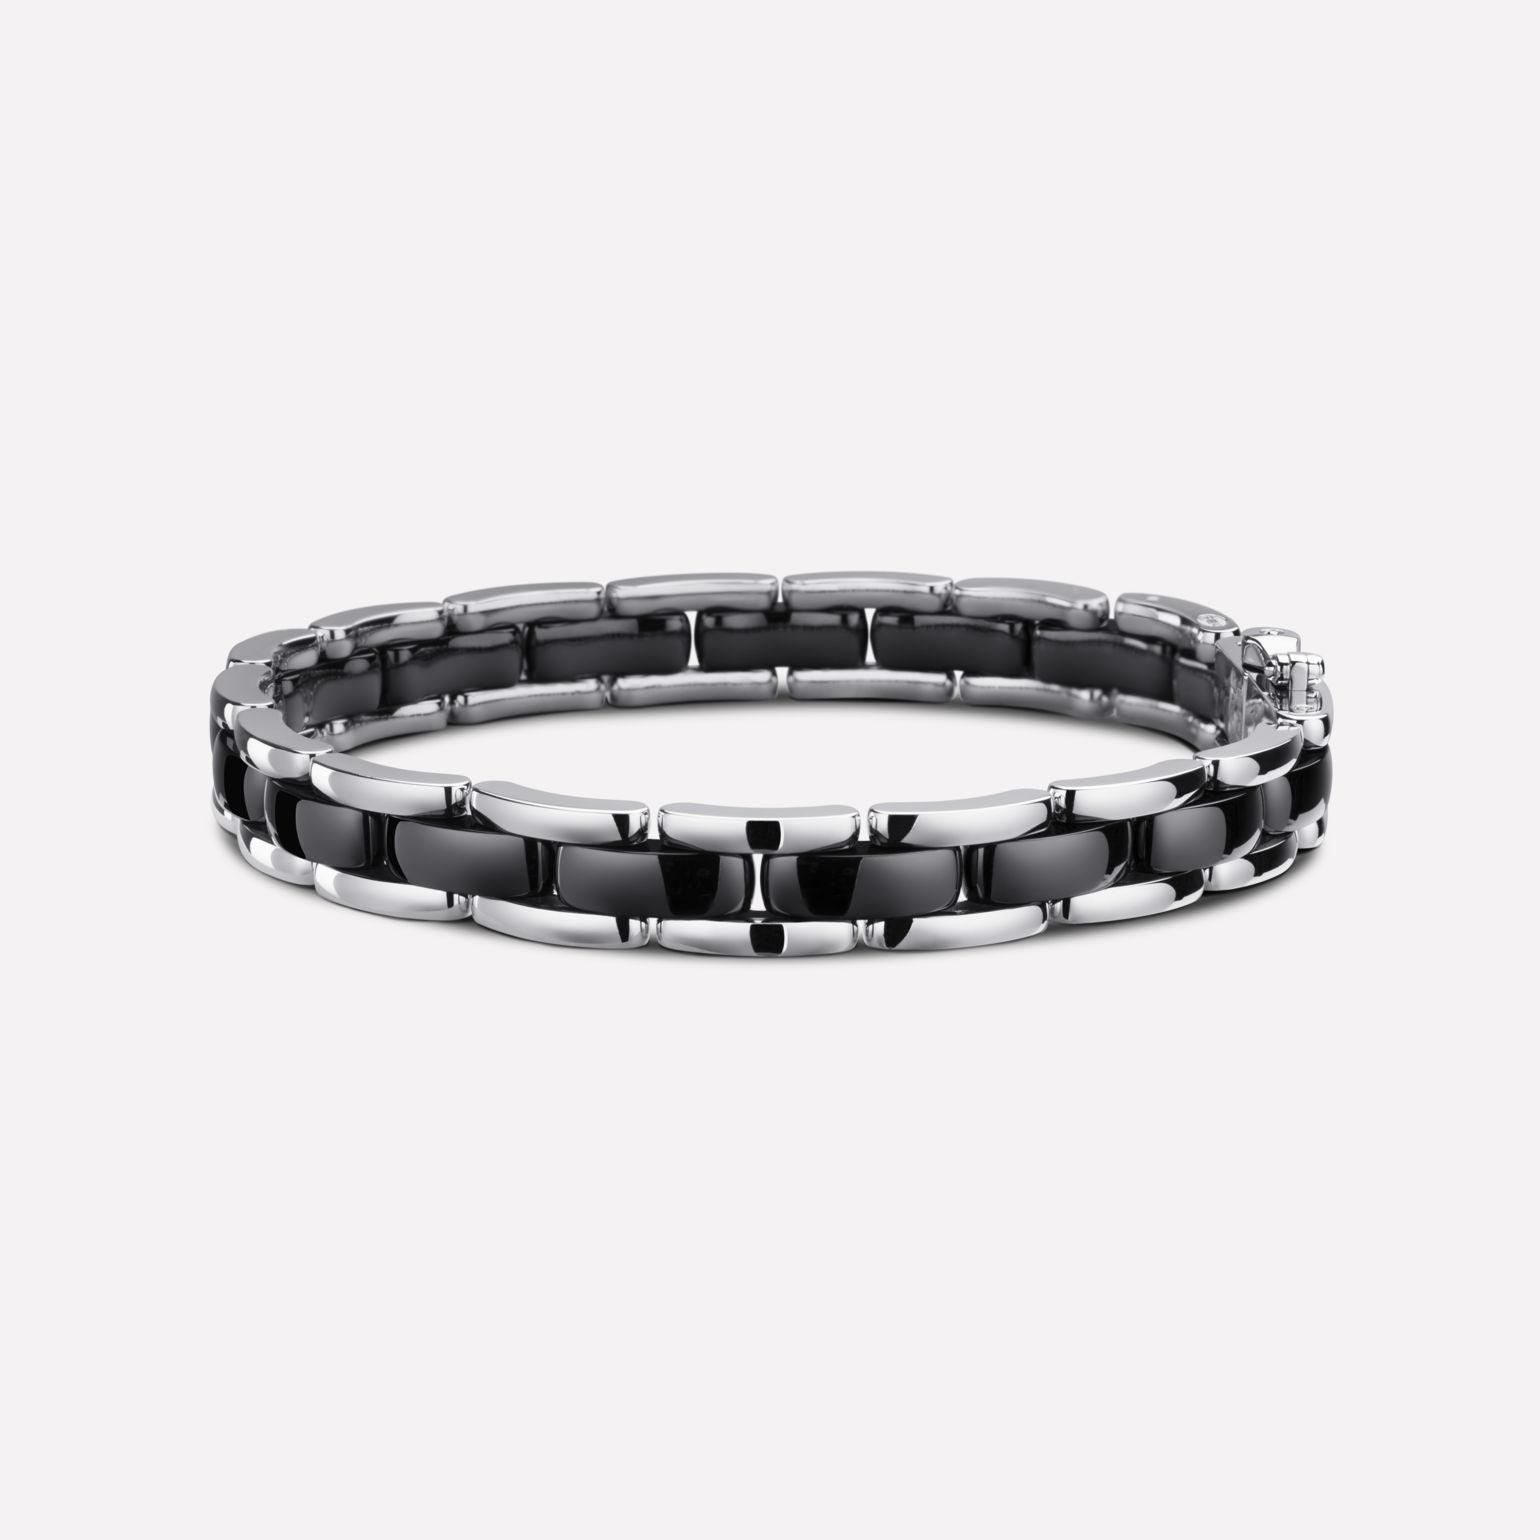 Ultra Bracelet Ultra bracelet in black ceramic and 18K white gold. Flexible version.